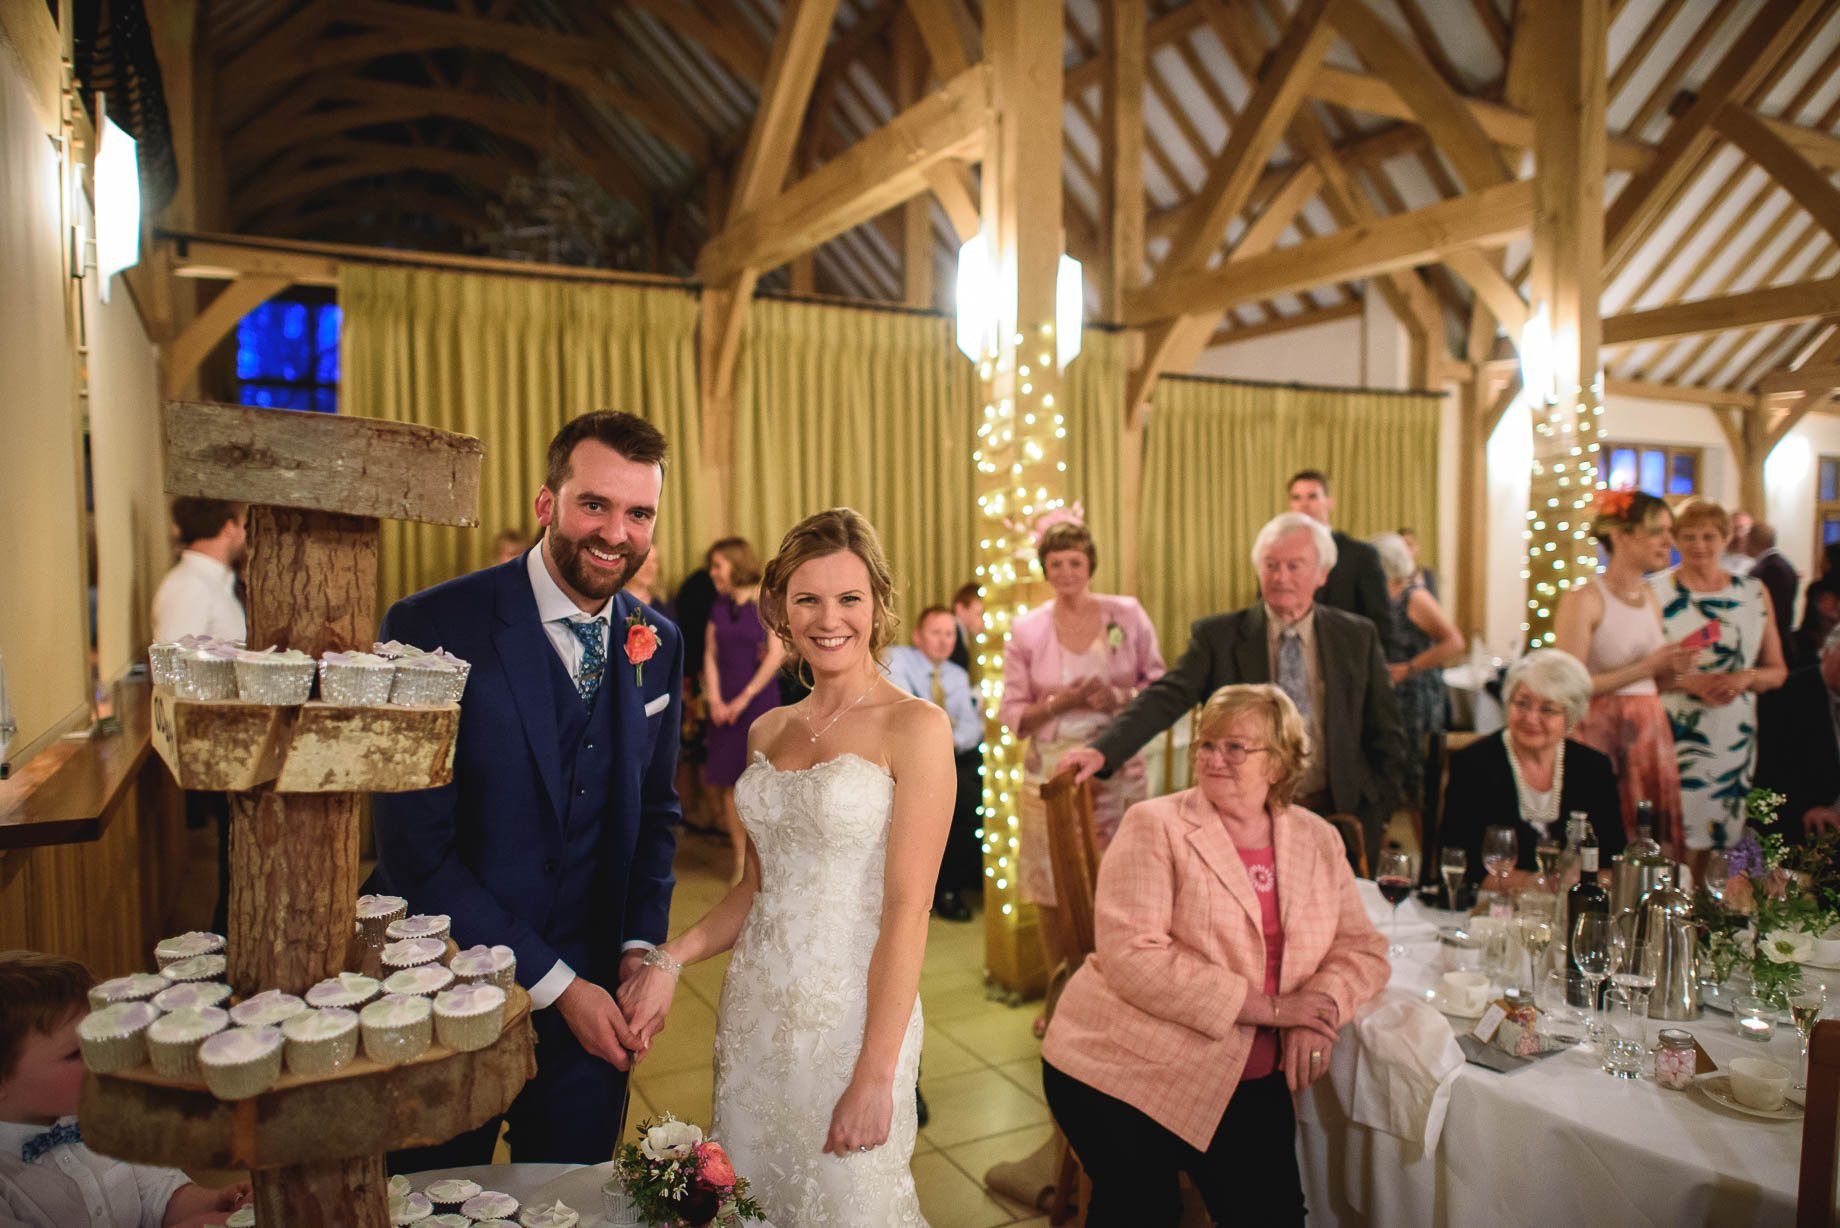 Rivervale Barn wedding photography by Guy Collier - Claire and Simon (126 of 133)